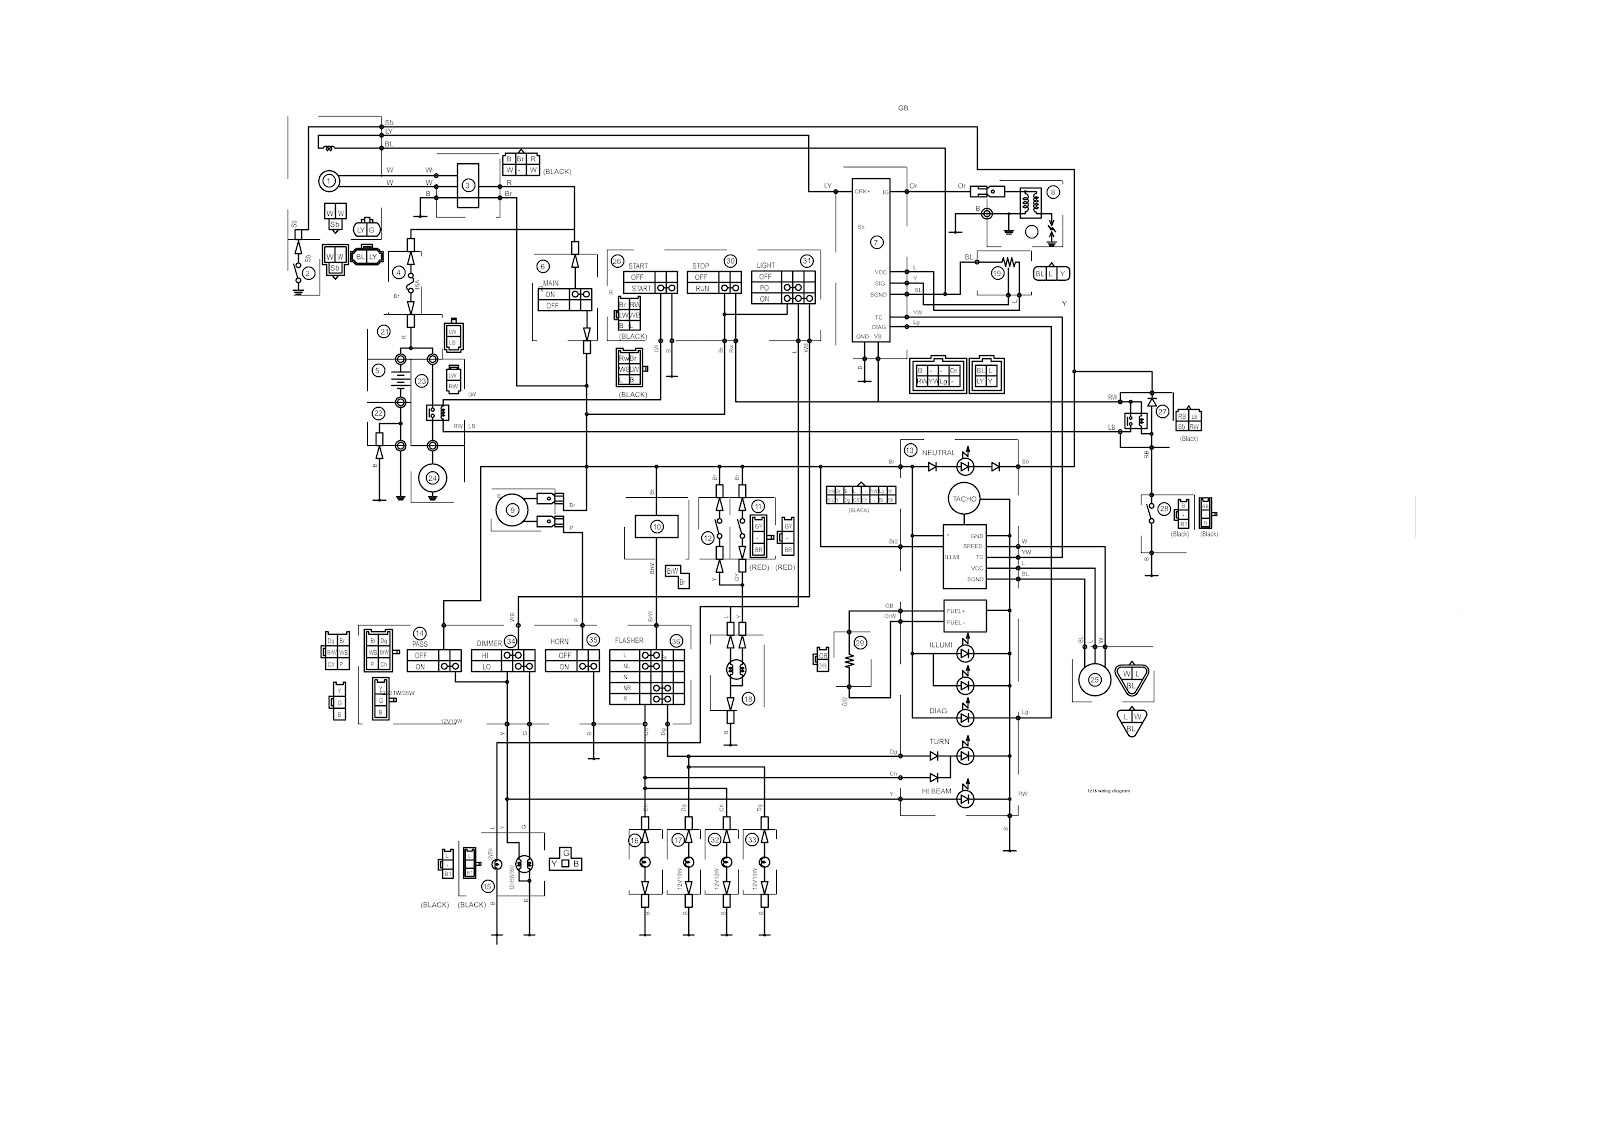 yamaha golf cart wiring diagram 8bdc1 90 yamaha golf cart wiring diagram wiring library yamaha golf buggy wiring diagram 8bdc1 90 yamaha golf cart wiring